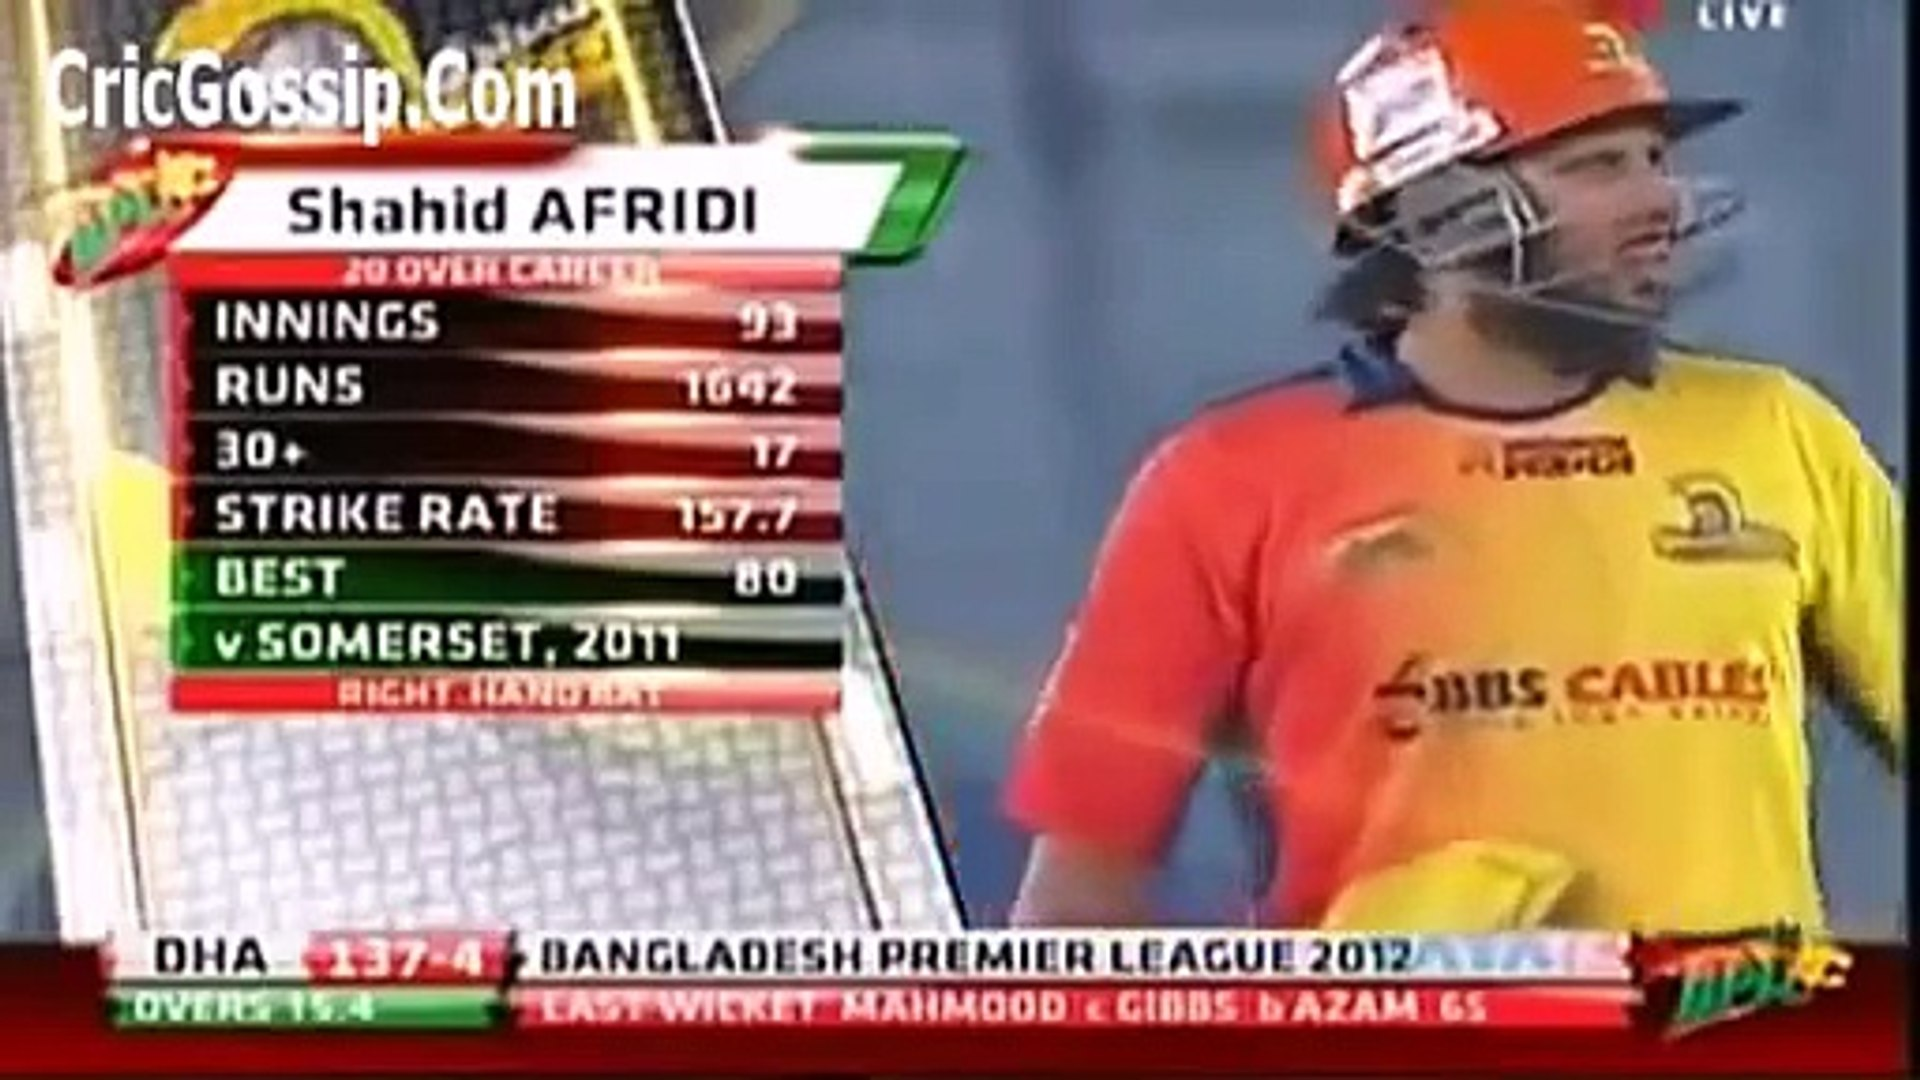 WORLD BIGGEST SIX OF shahid AFRIDI OF 230 METRE 2013 In Cricket History